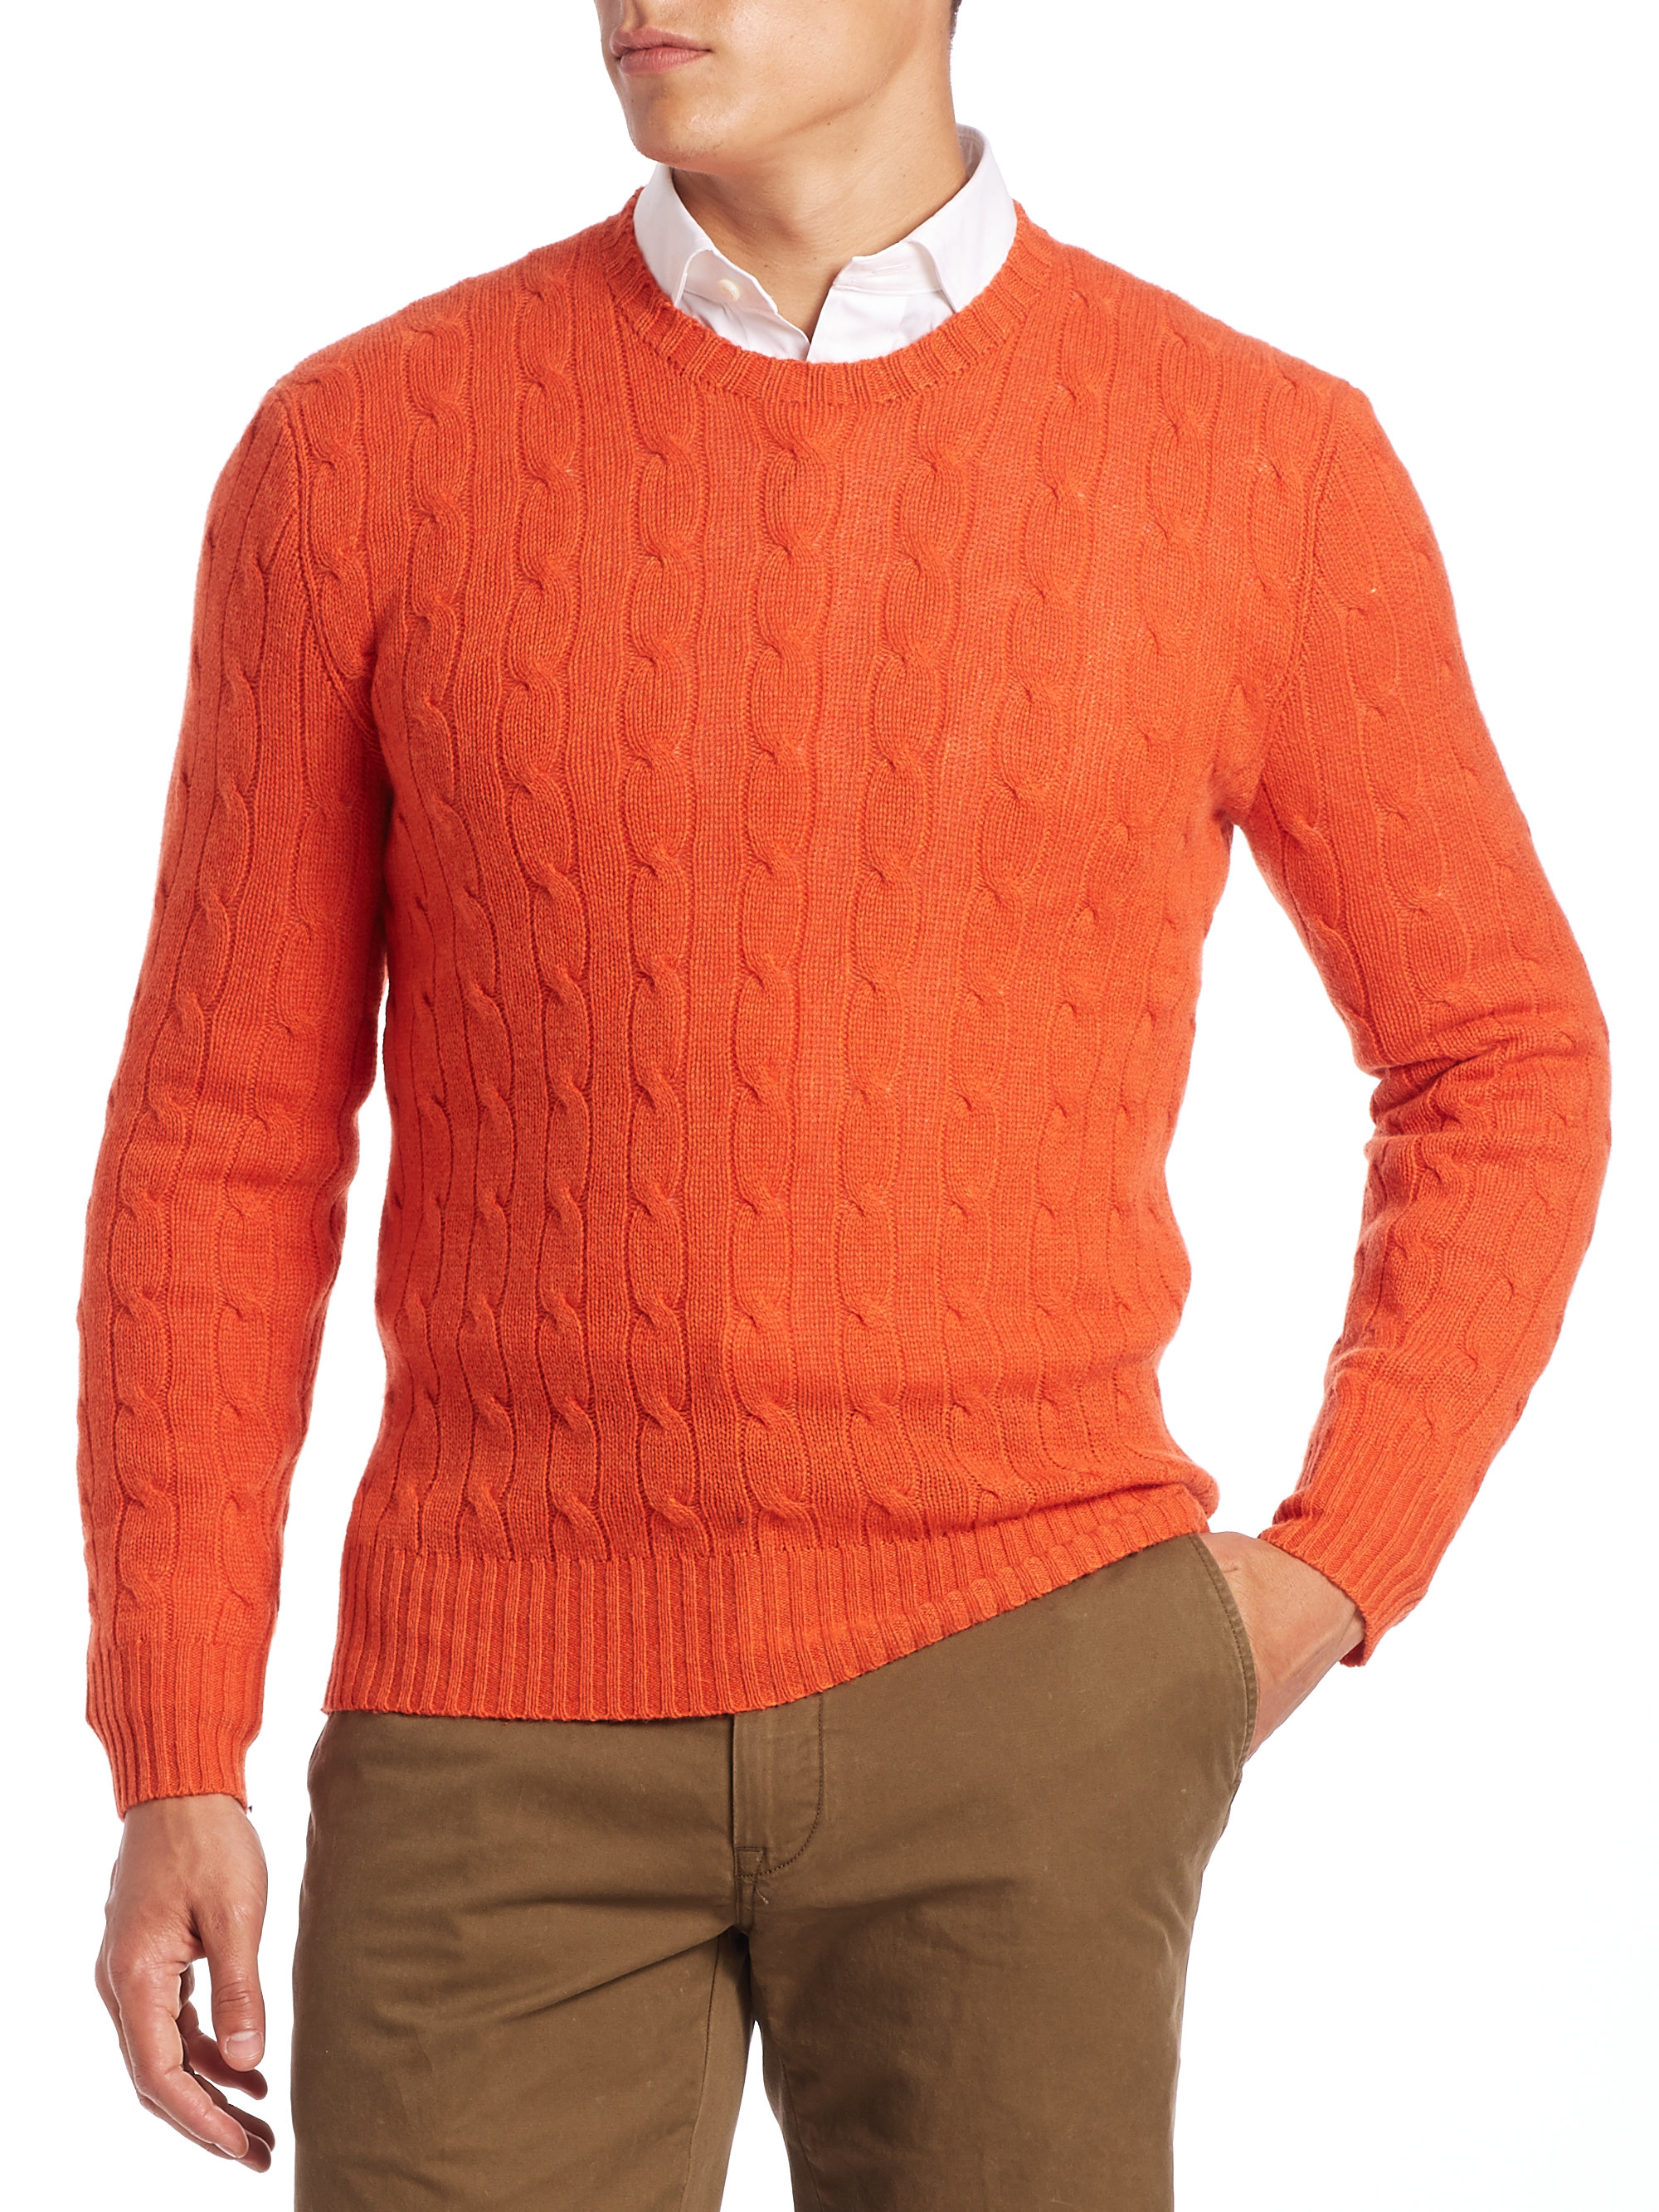 Polo Ralph Lauren Cable Knit Cashmere Sweater In Orange For Men Lyst